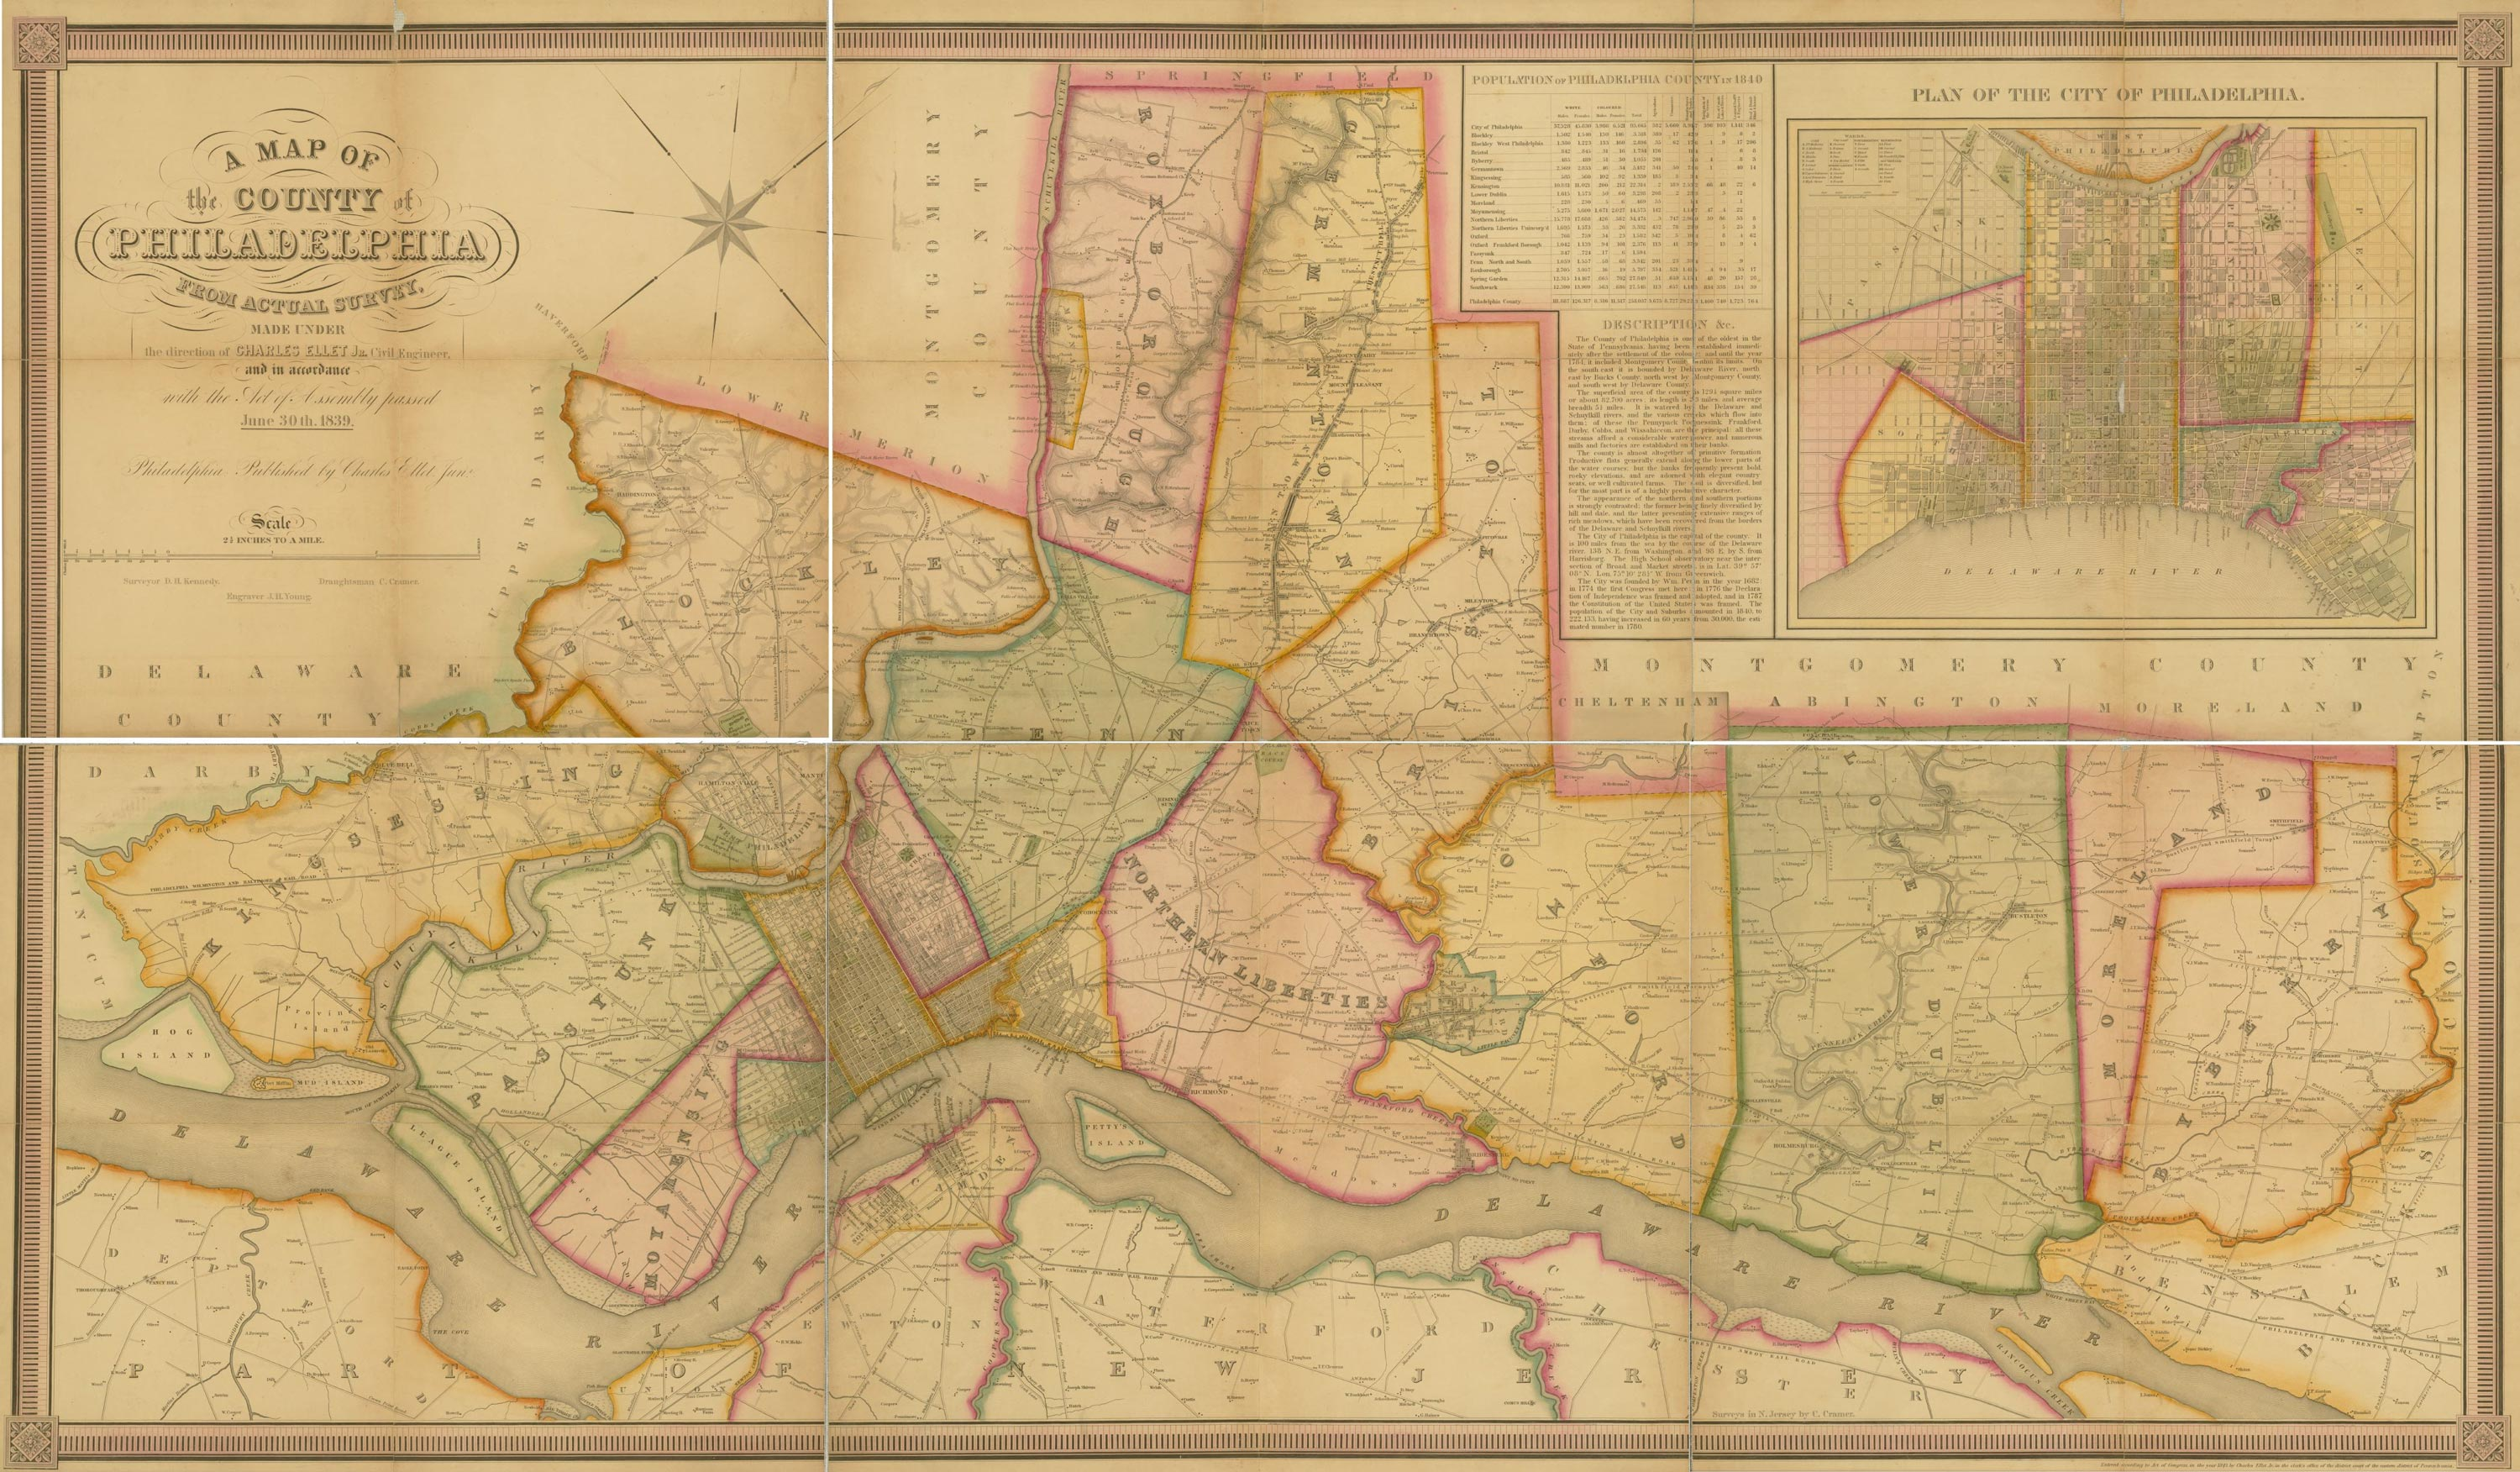 1843 Map of the County of Philadelphia, by Ellet